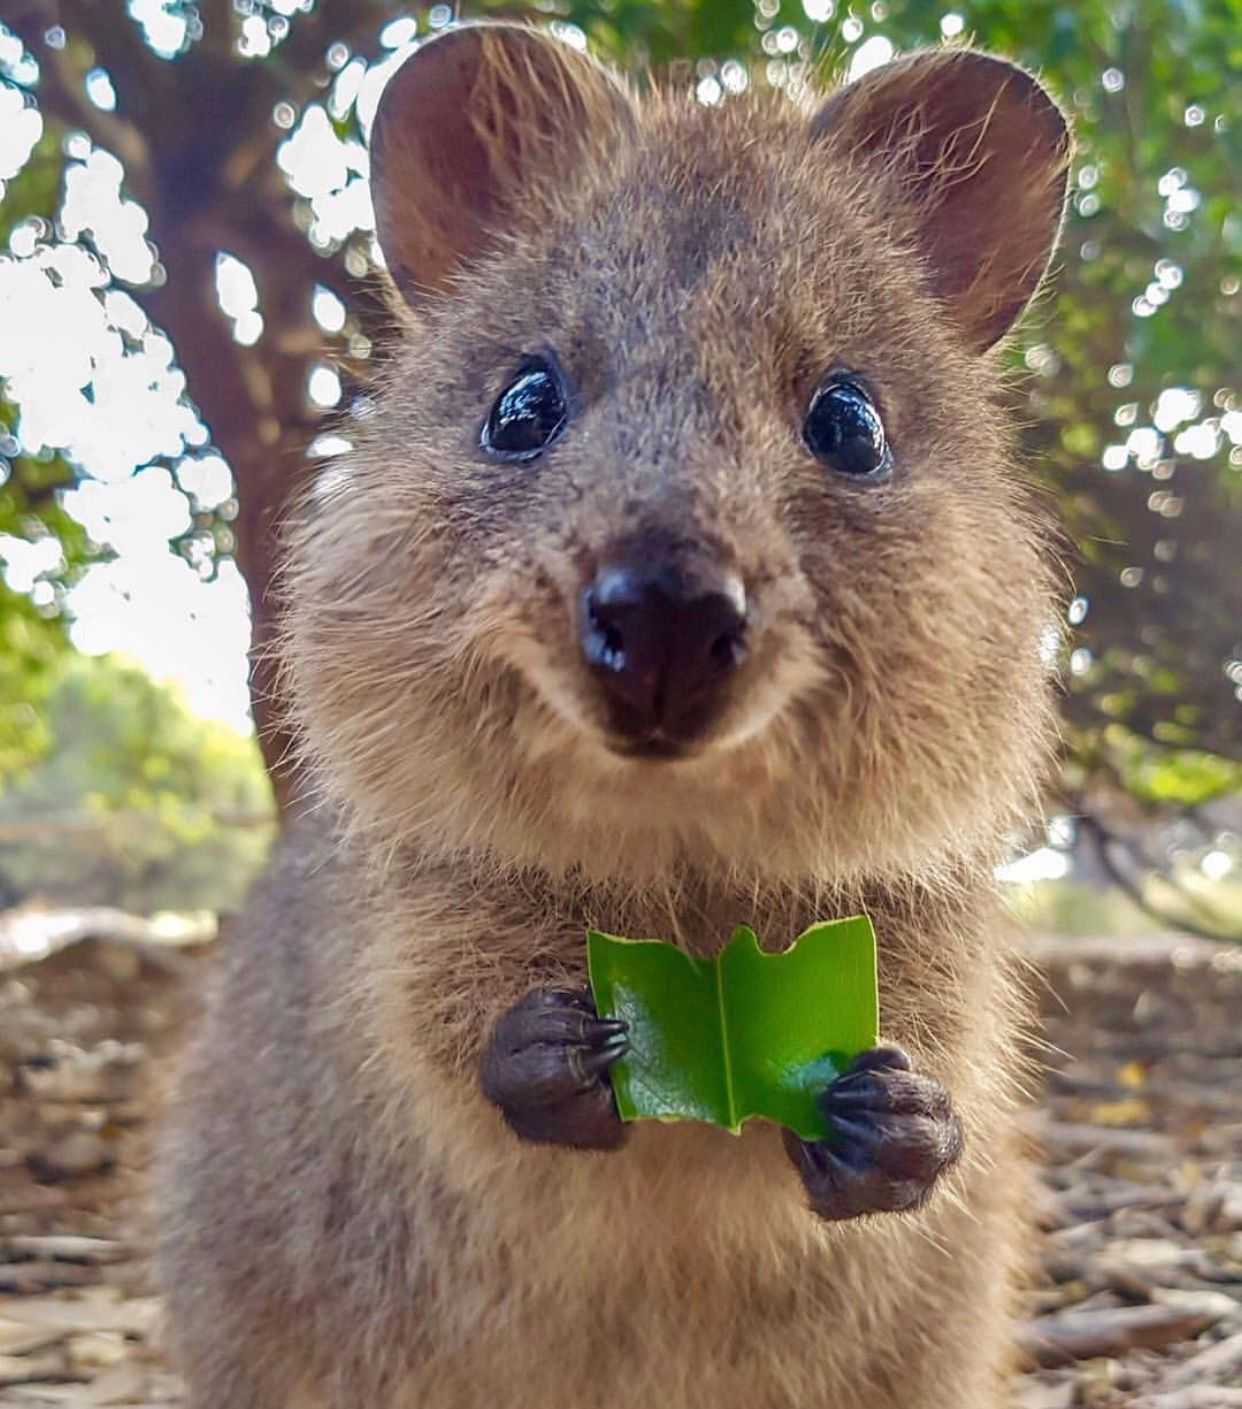 Pin by Kim Lancaster on Cuteness! | Cute animals, Quokka ...